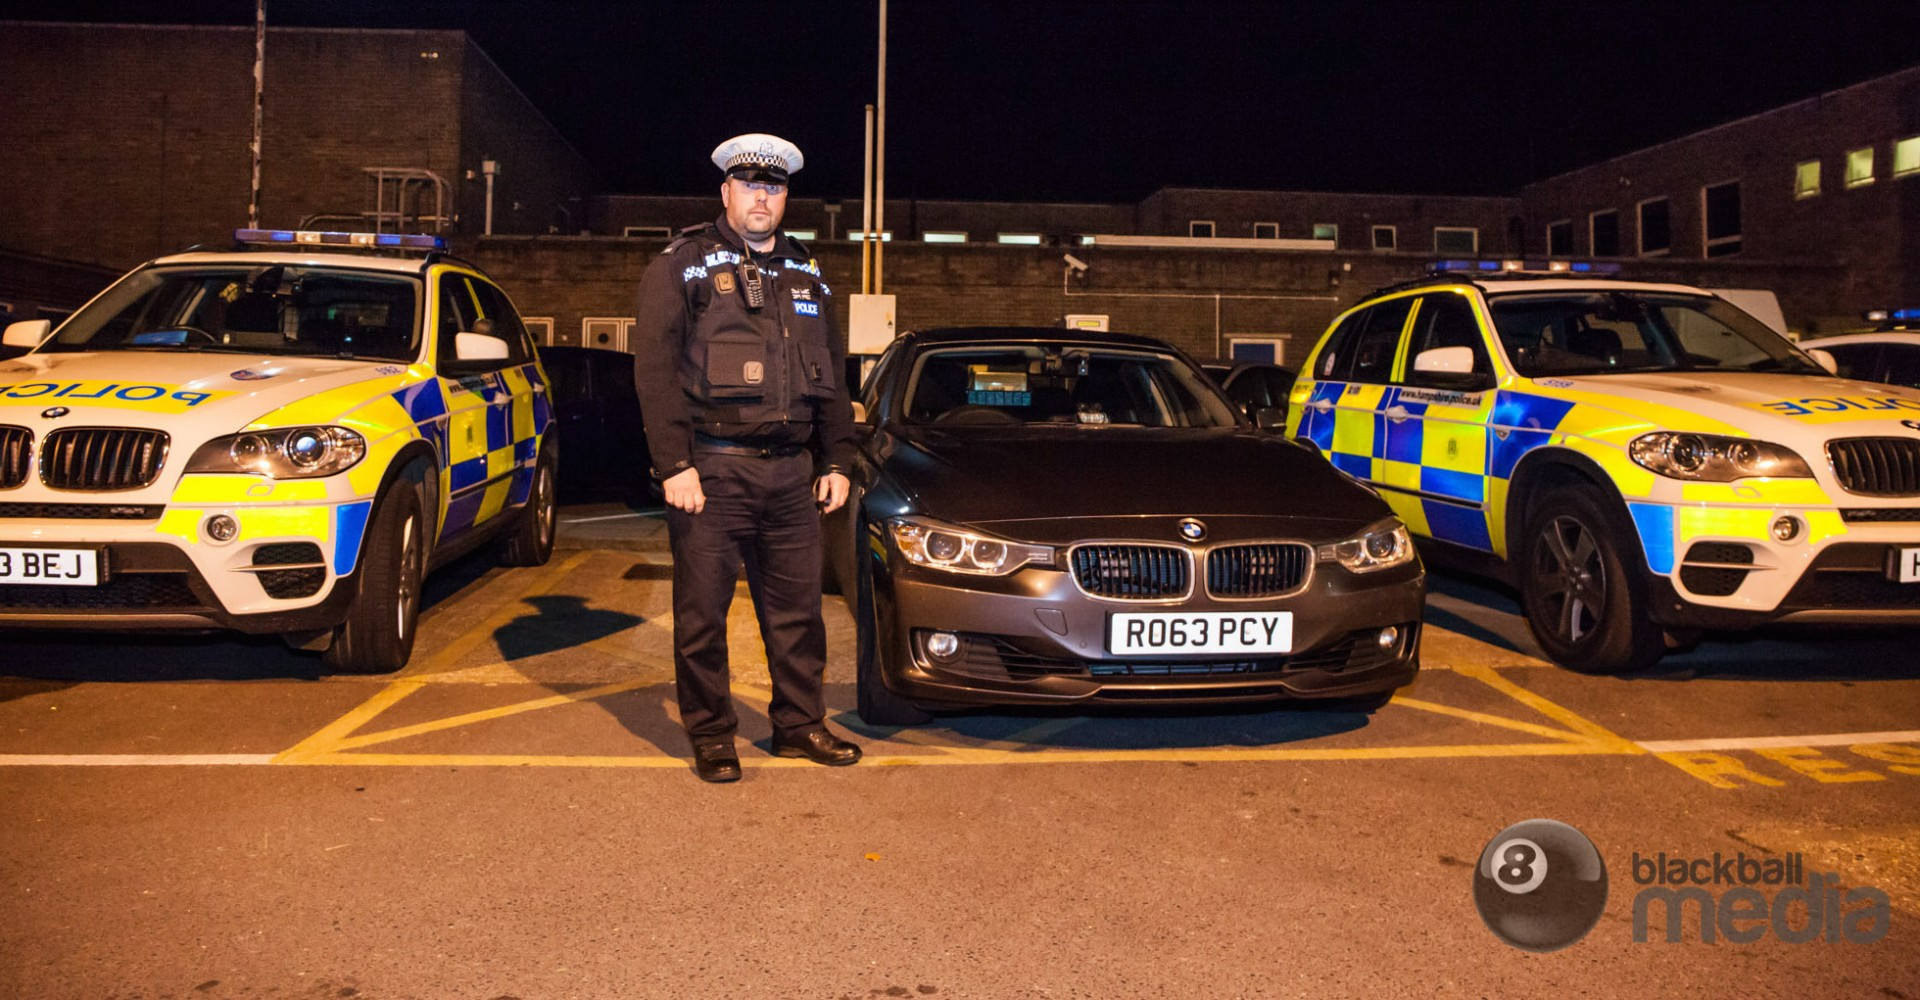 United Kingdom police officer standing next to unmarked police cruiser